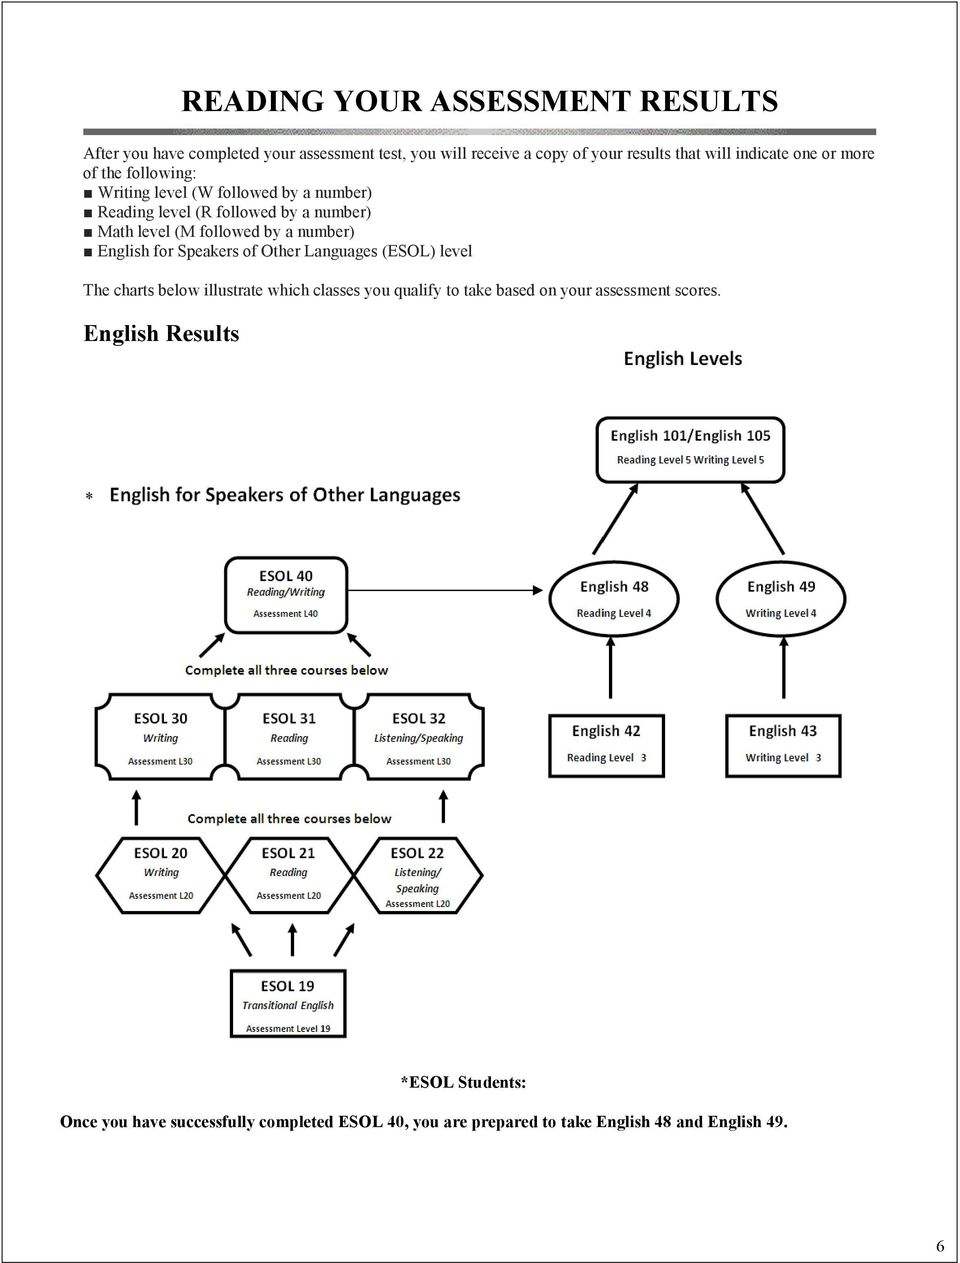 number) English for Speakers of Other Languages (ESOL) level The charts below illustrate which classes you qualify to take based on your